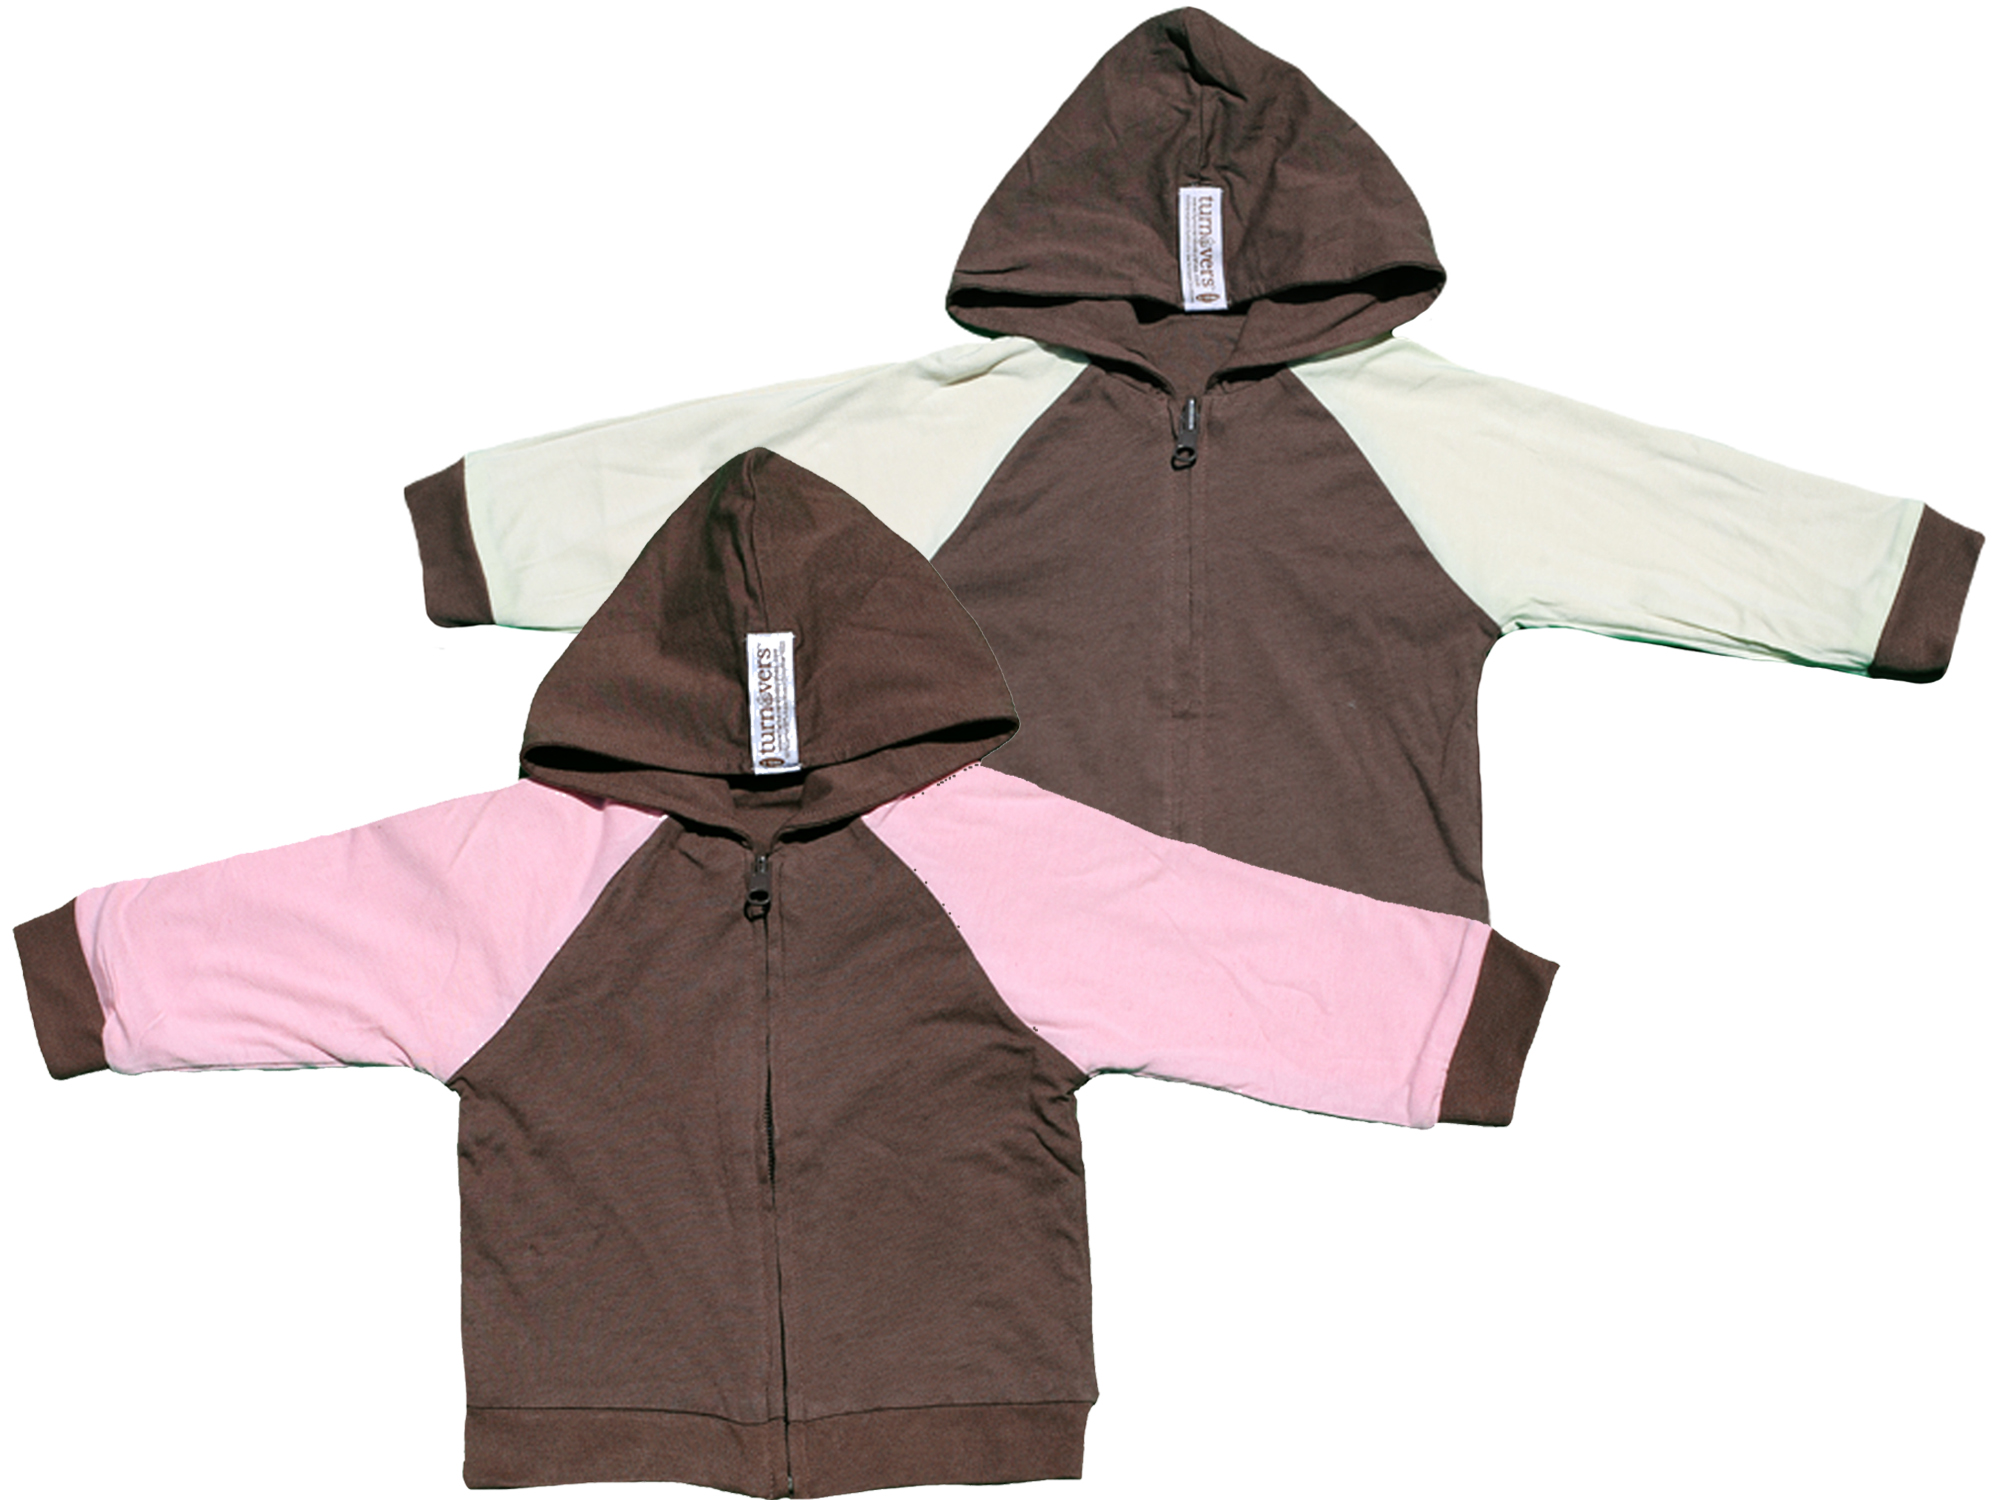 TURNOVERS Gender Neutral Baby Clothing REVERSIBLE ZIP HOODIE.  COLOR: PINECONE with Petal/MINT Raglan SLEEVES